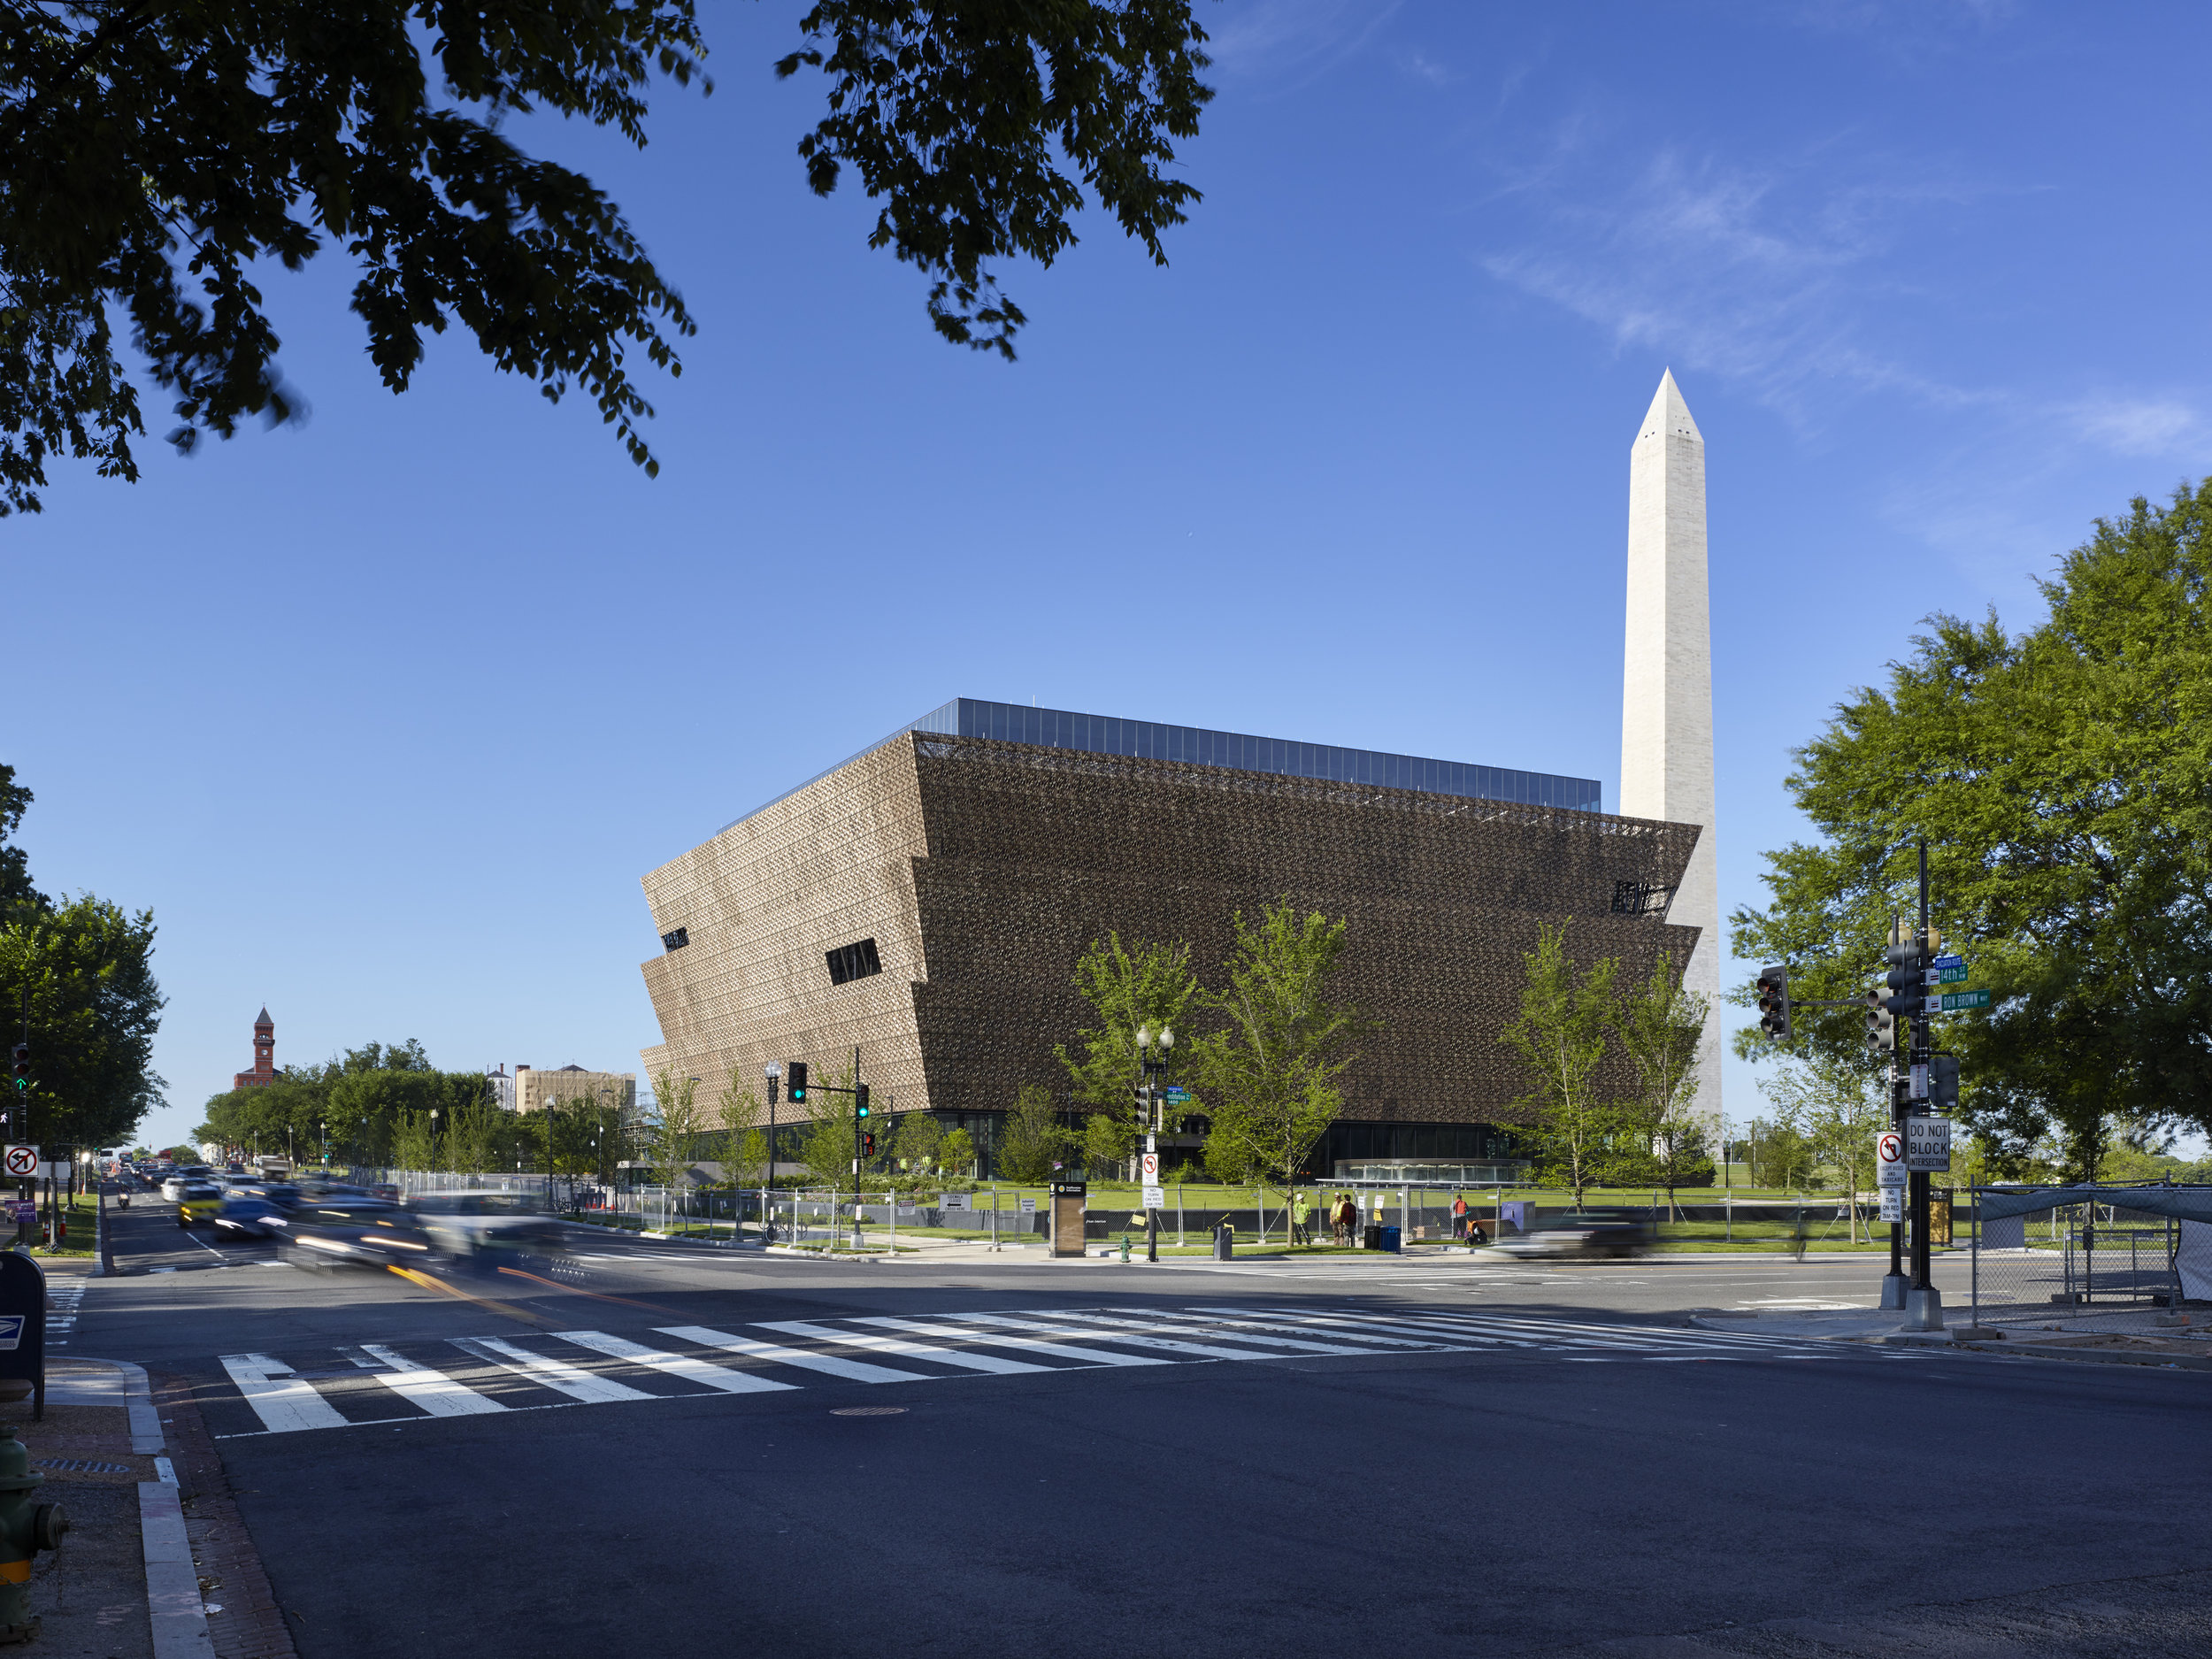 photo courtesy of the National Museum of African American History and Culture